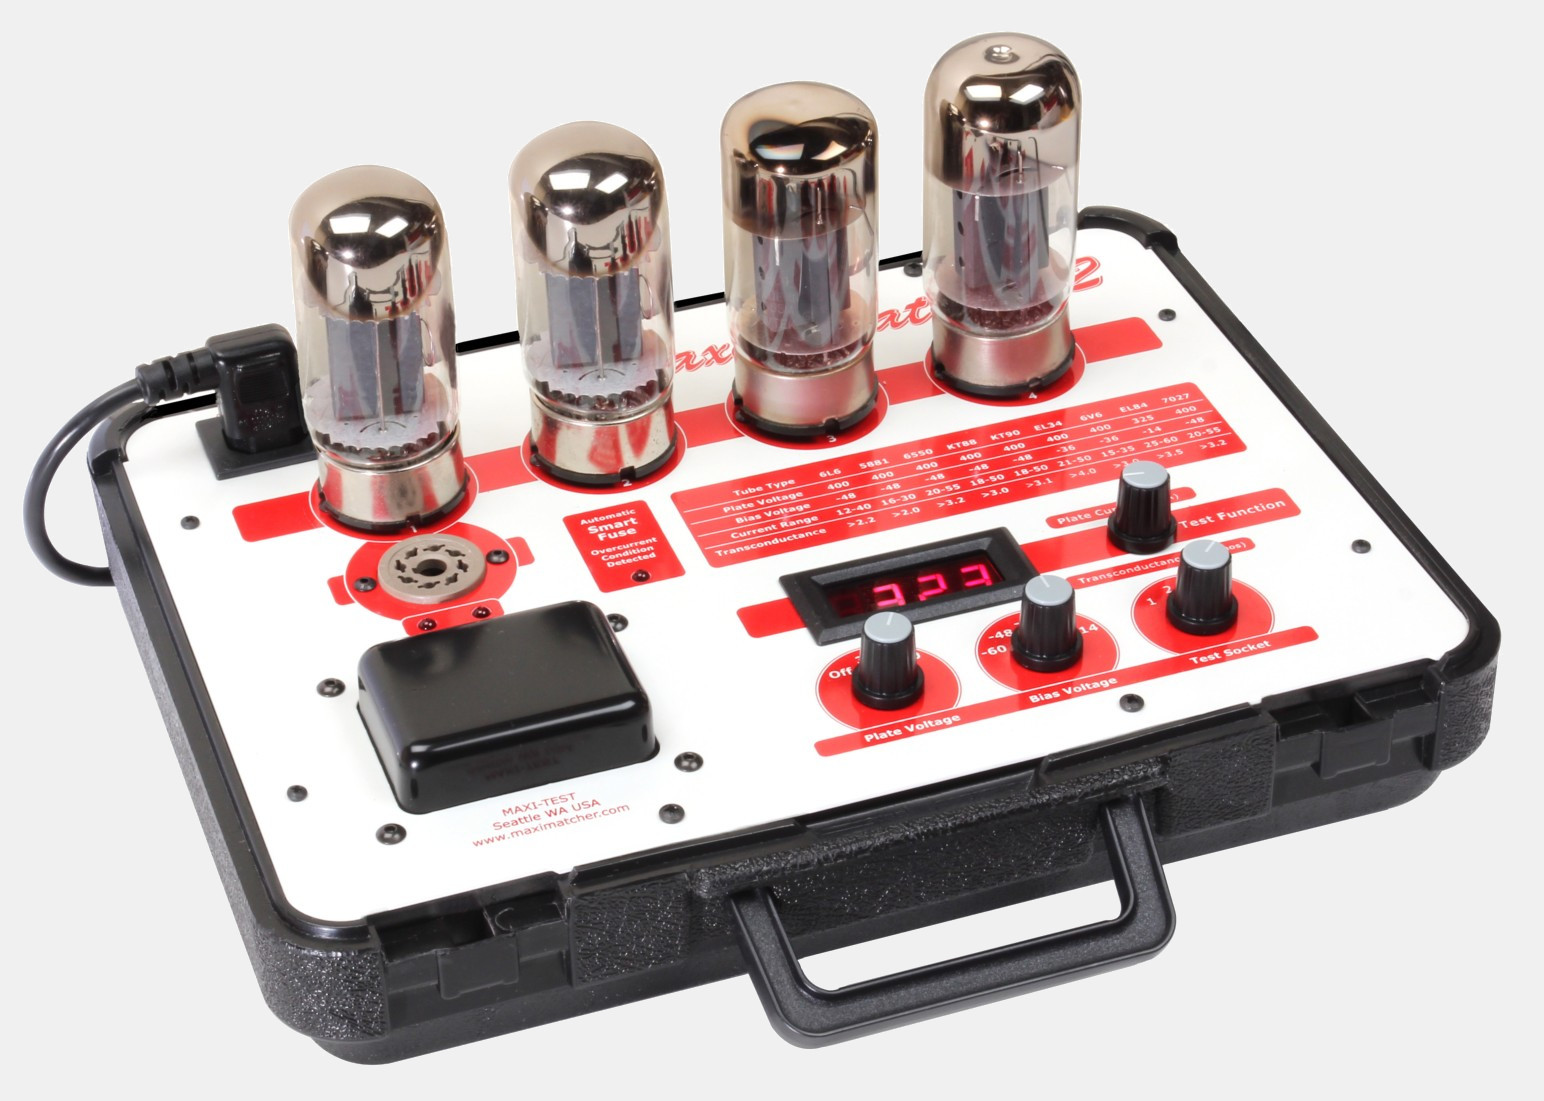 Maximatcher   test and match vacuum tubes for superior audio wth the